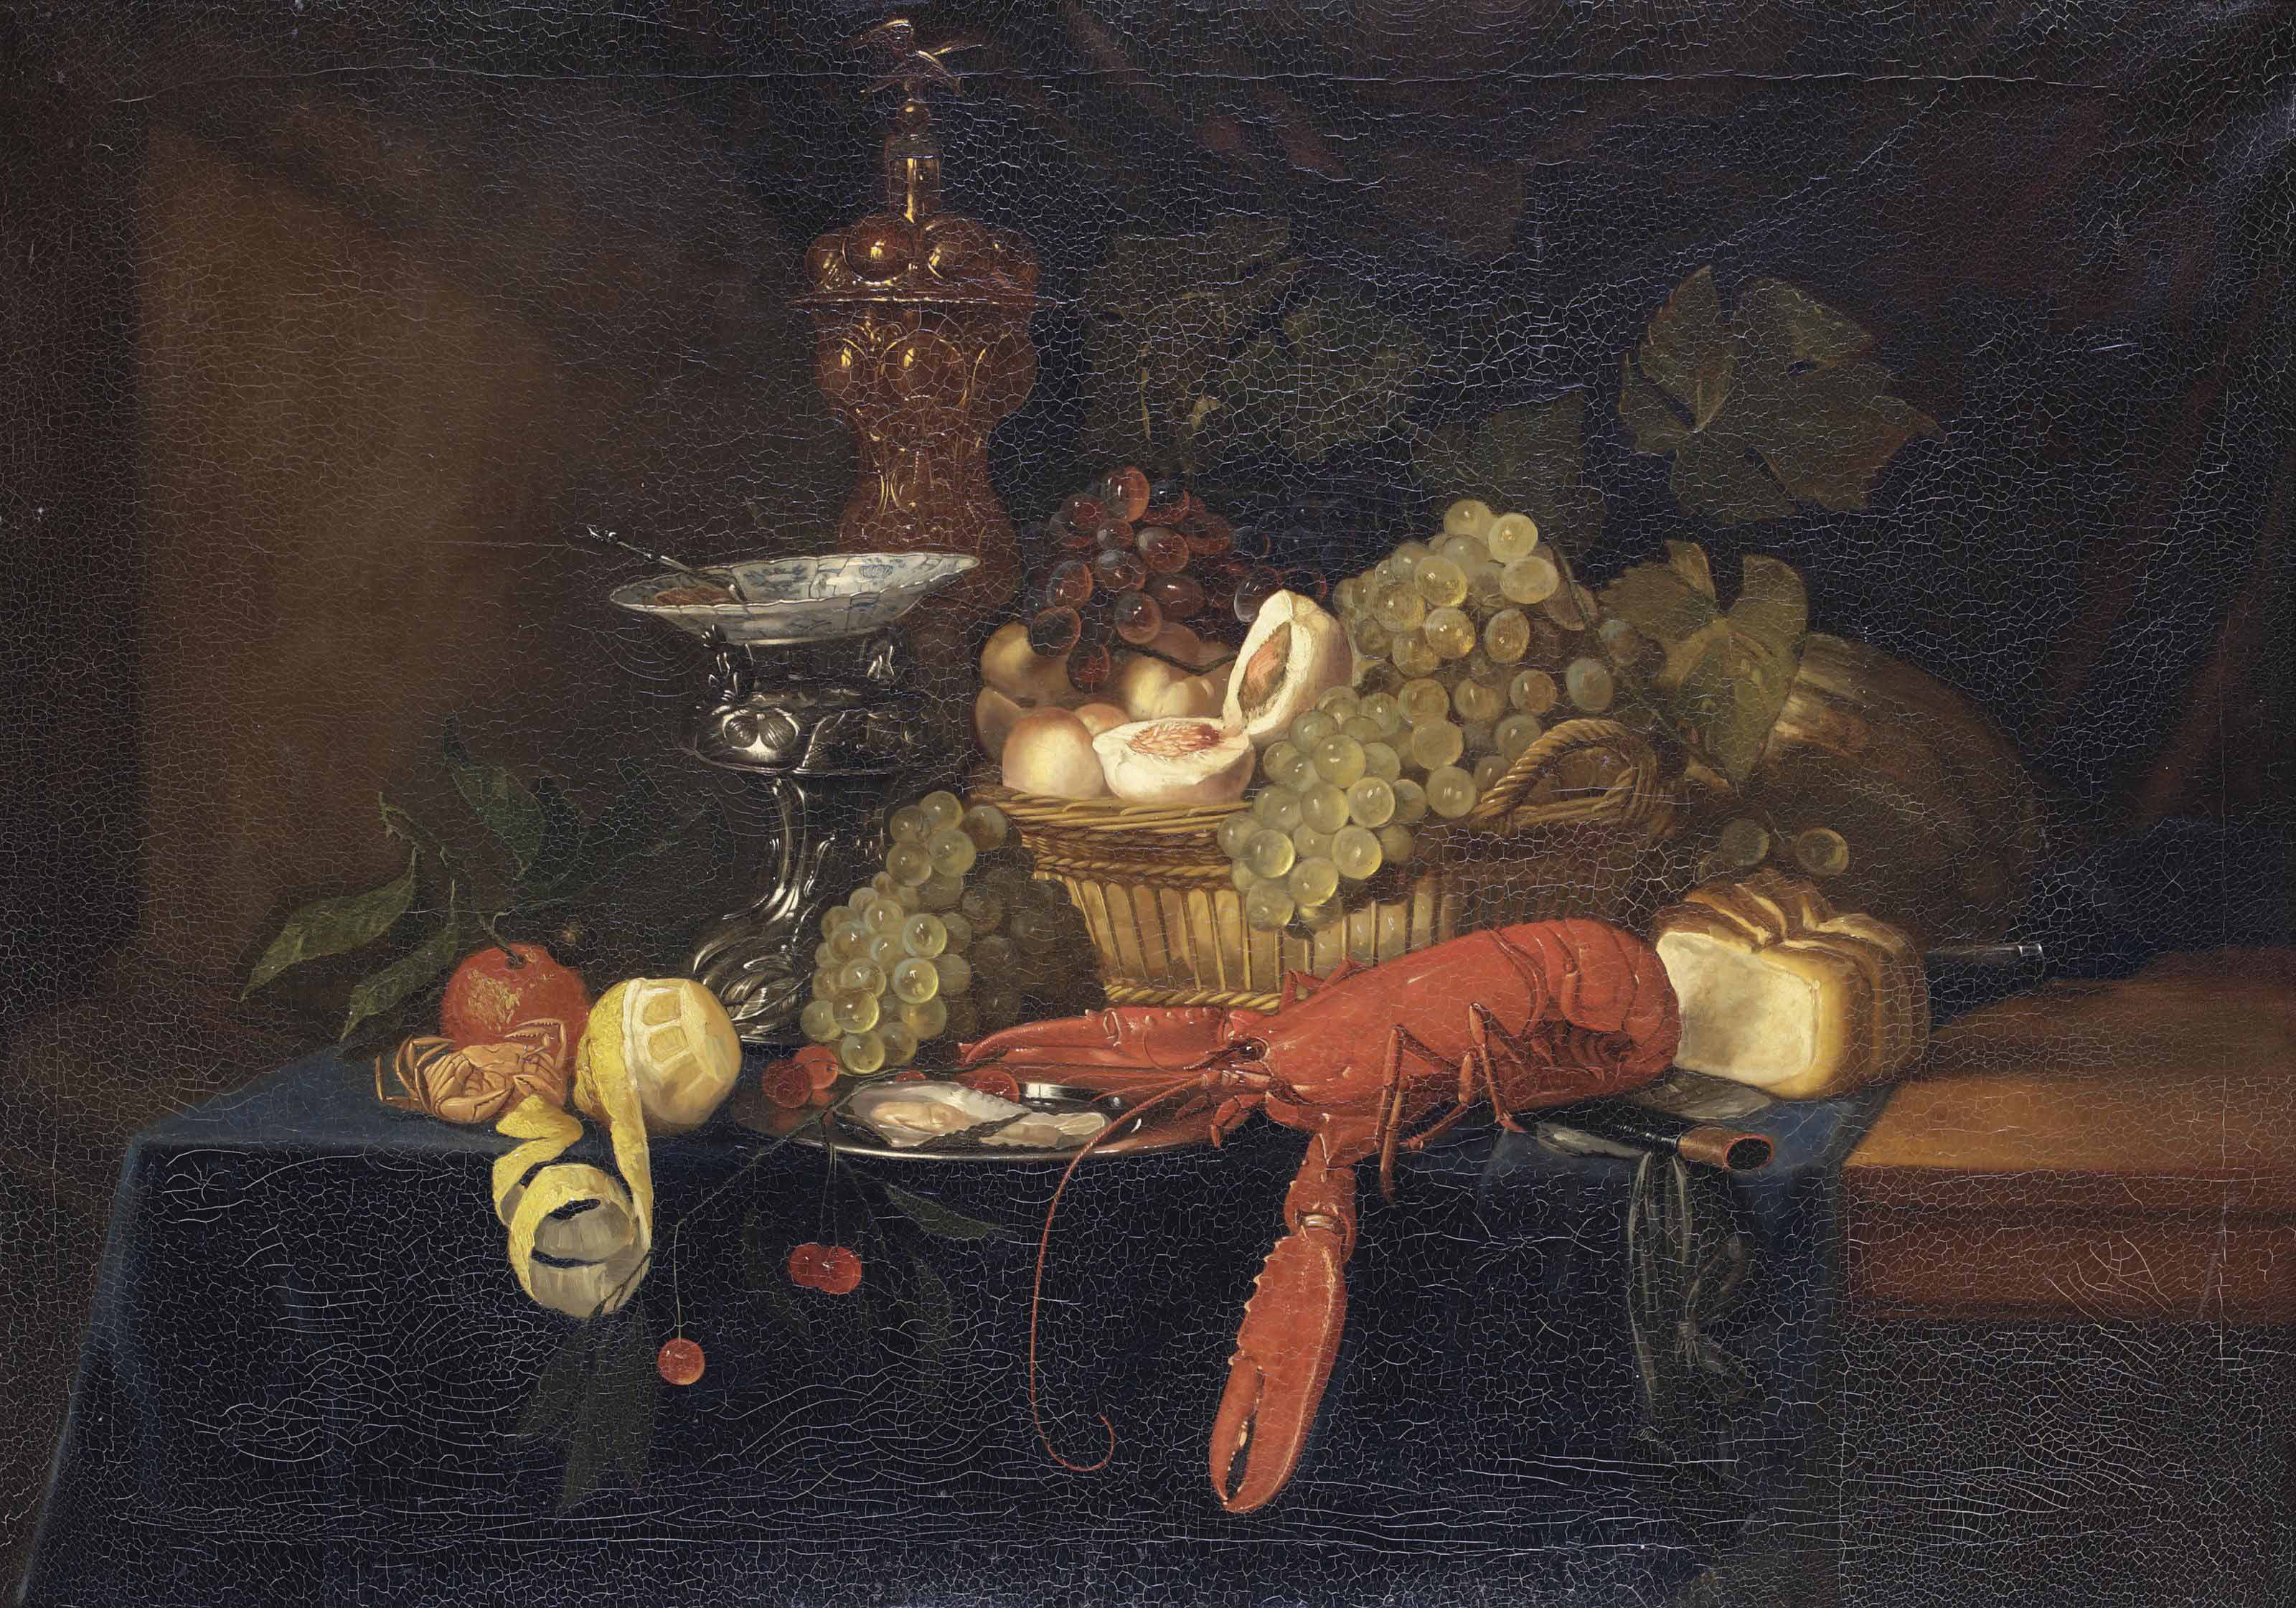 An orange, a lemon, grapes, a silver standard with a porcelain plate, a golden cup, oysters on a pewter plate, a lobster, a fruit basket, bread, a knife, all on a partially draped wooden table